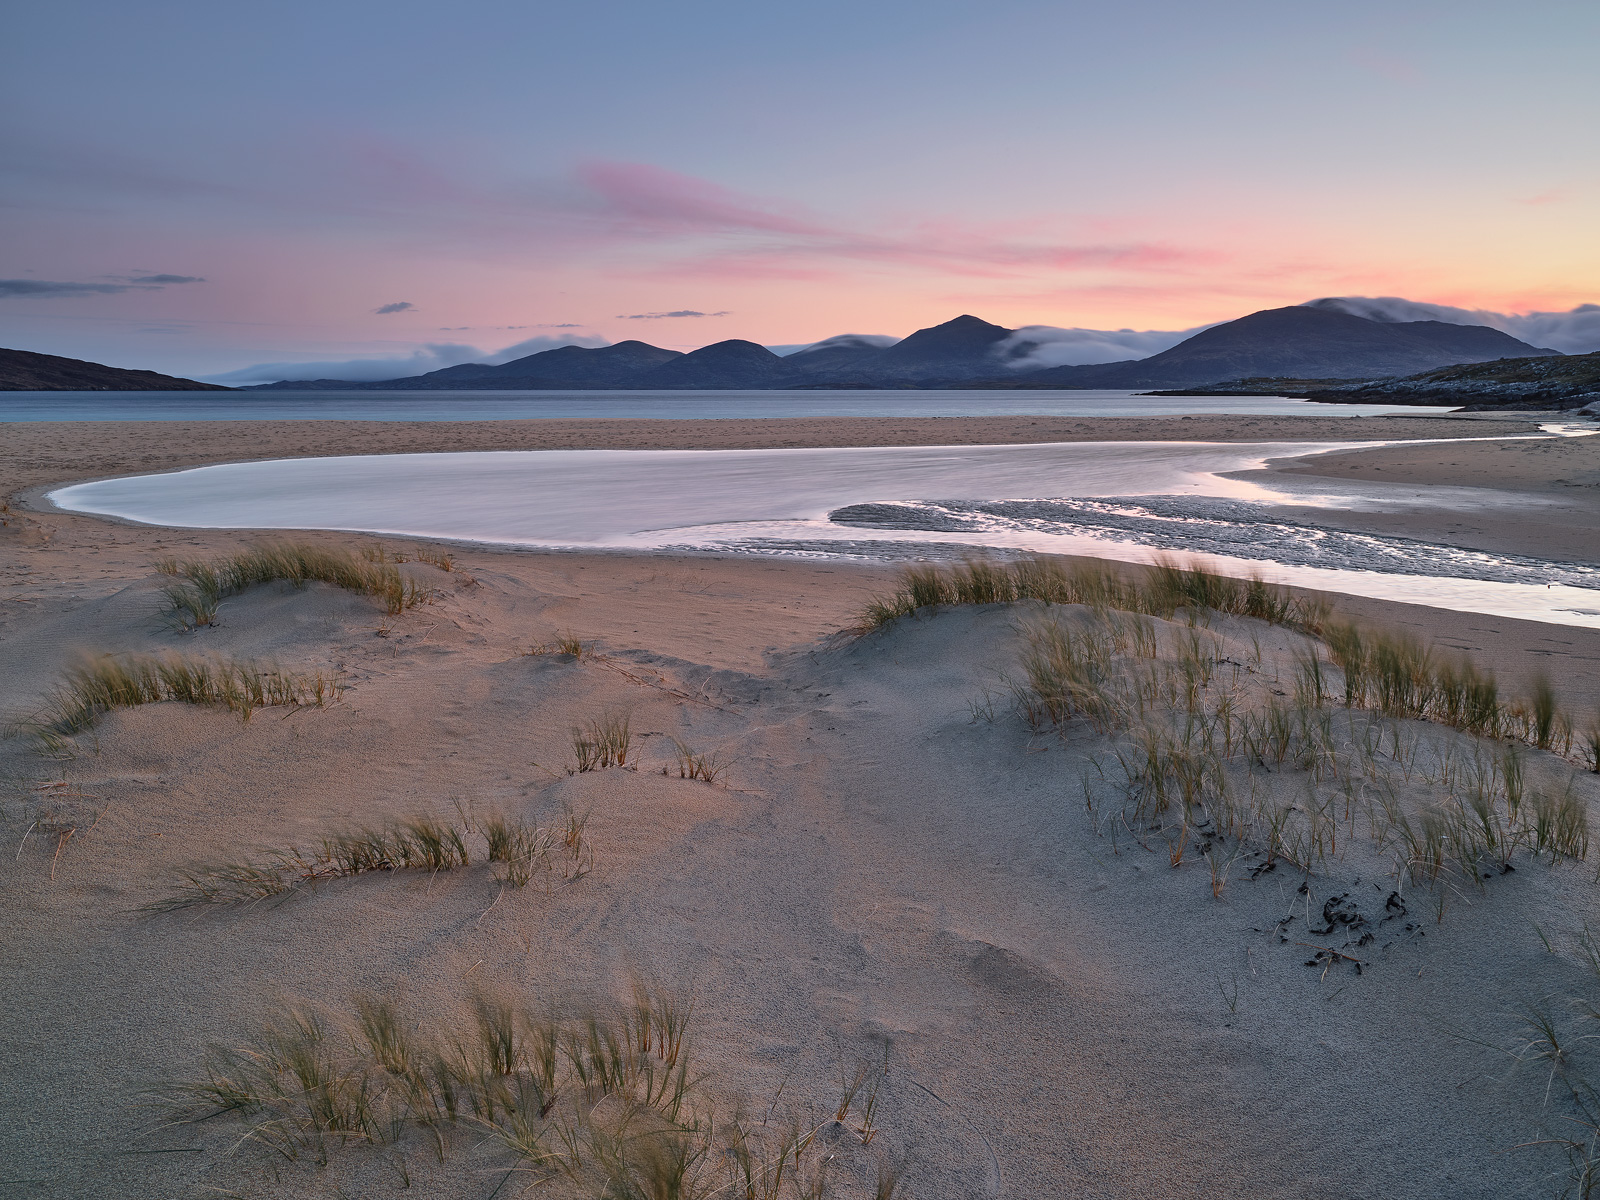 A peachy pink sunrise reflects off the sandy beach and a dune pool at Traigh Rosamol part of Luskentyre Bay on Harris